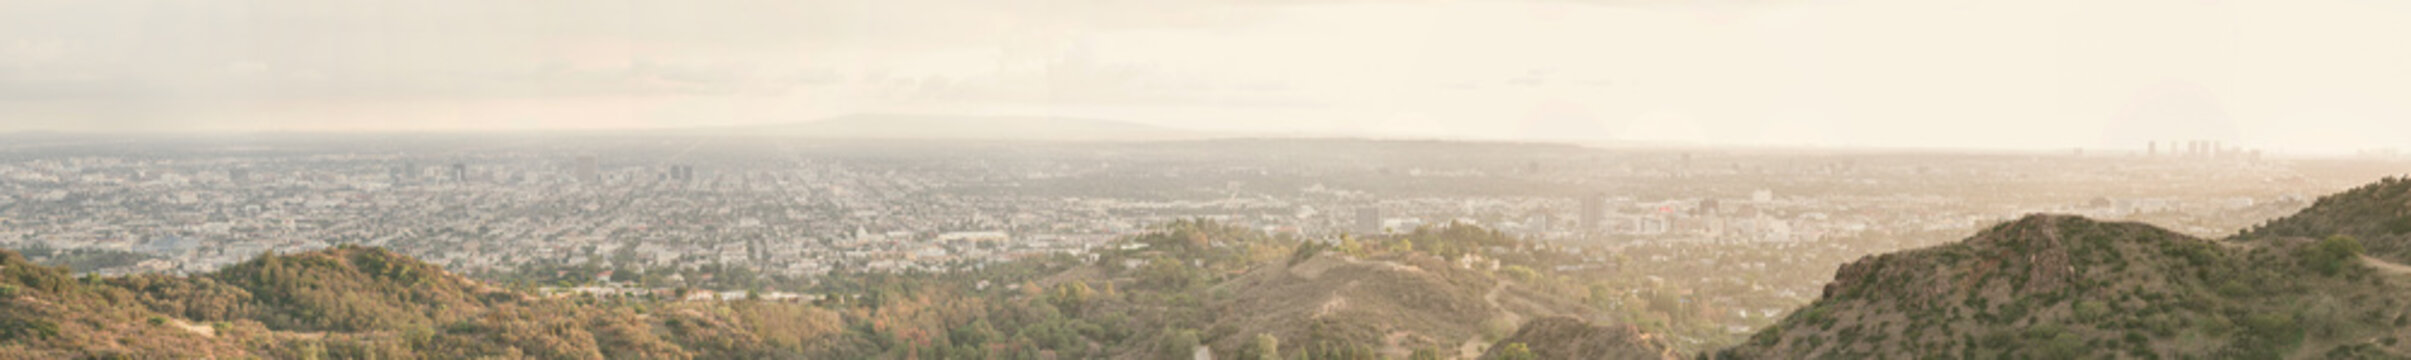 Panoramic view of Los angeles city